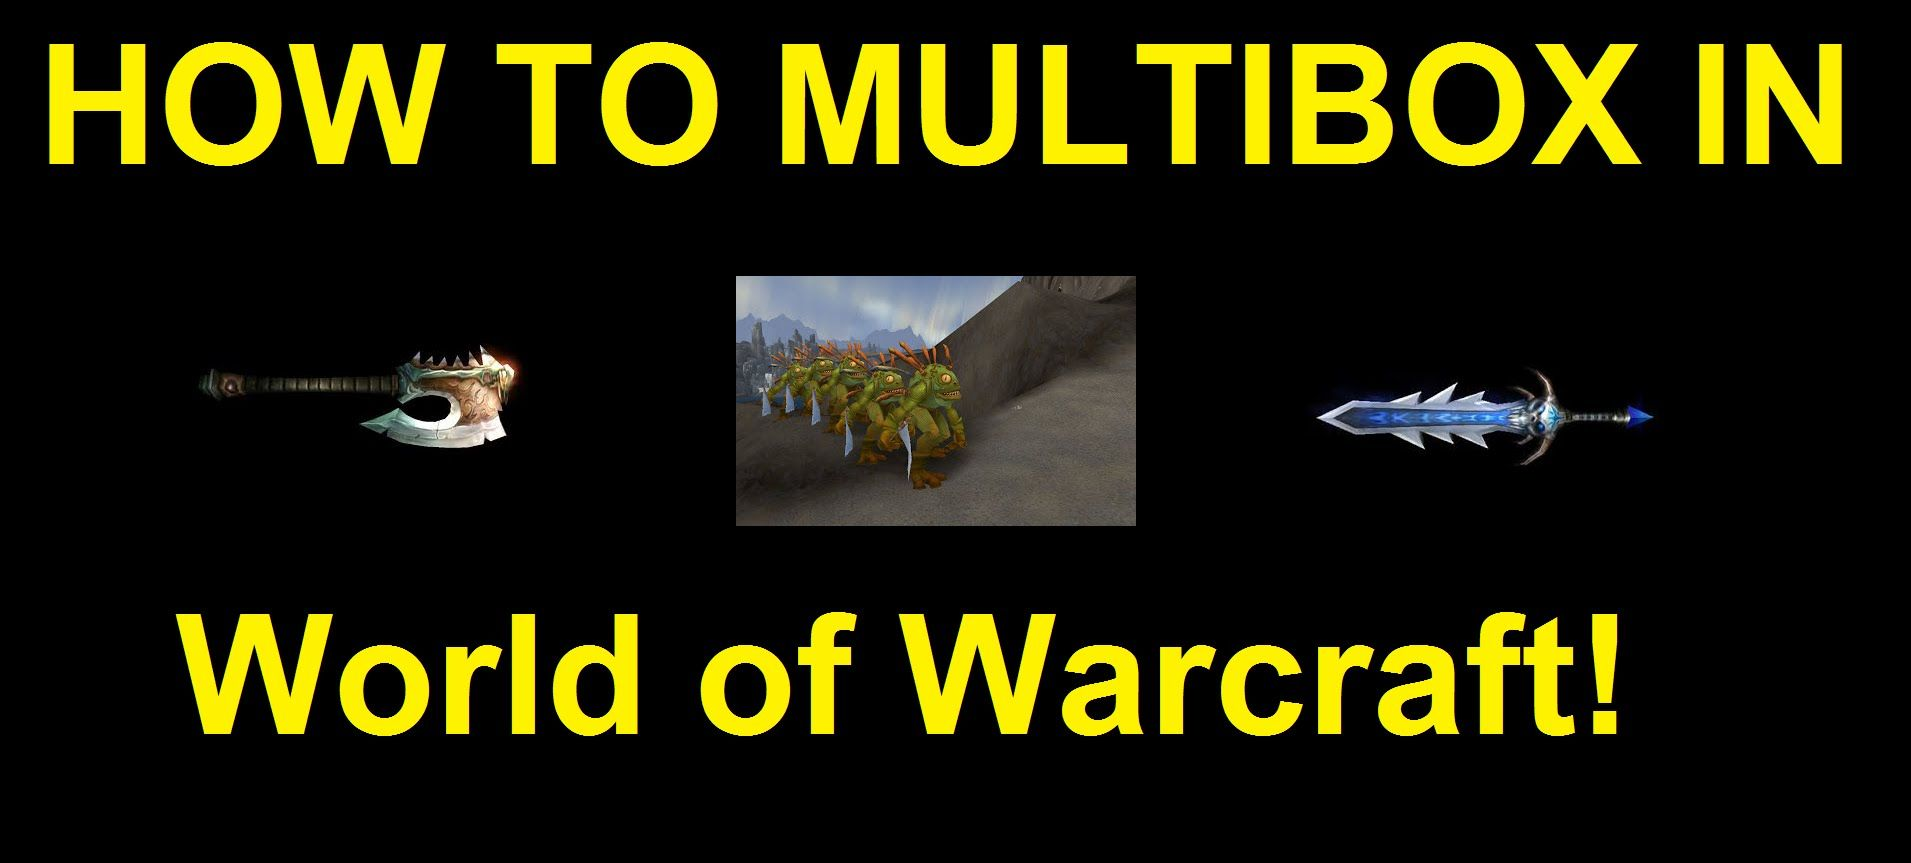 How to Multibox in World of Warcraft | Gaming Videos | World